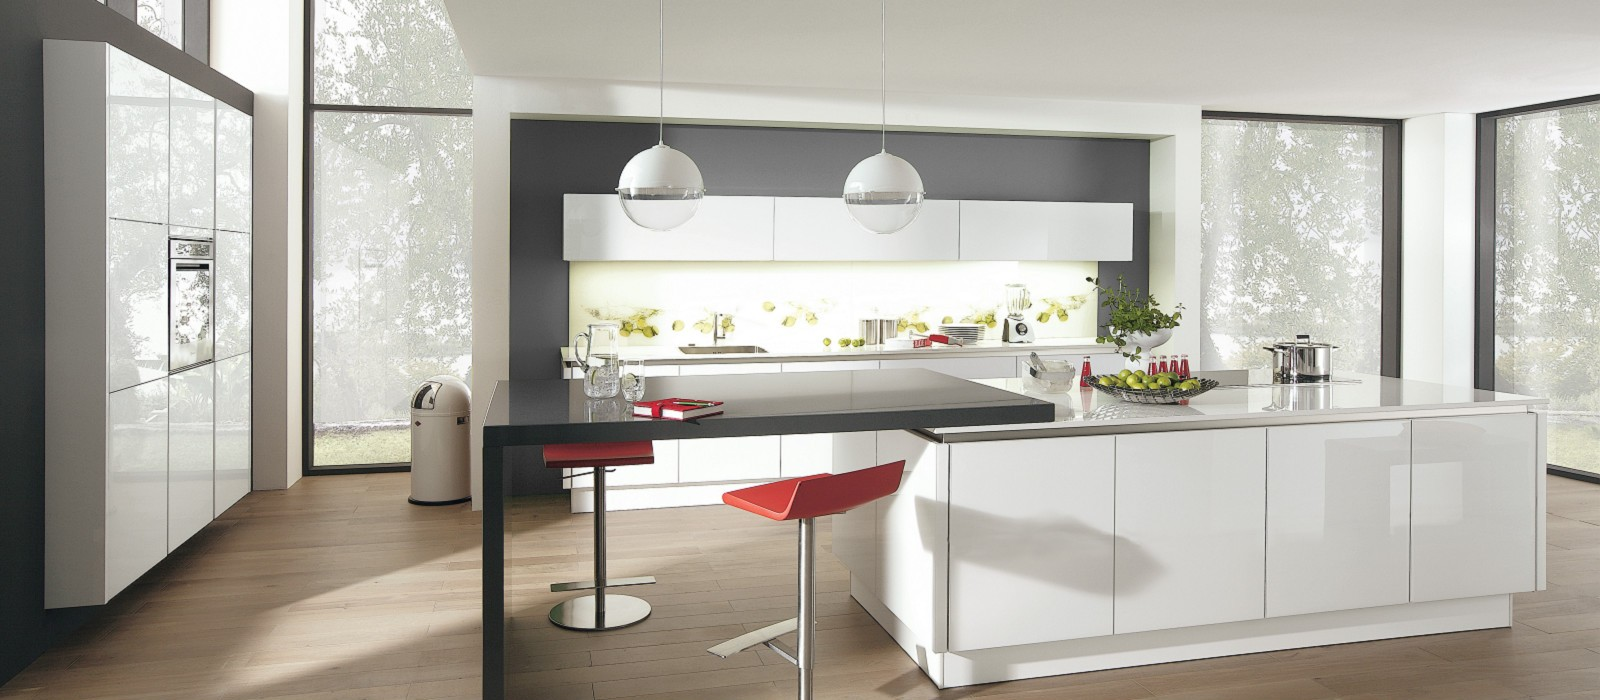 Miss blog cuisine design cuisine am nag e cuisine tendance for Cuisines contemporaines design